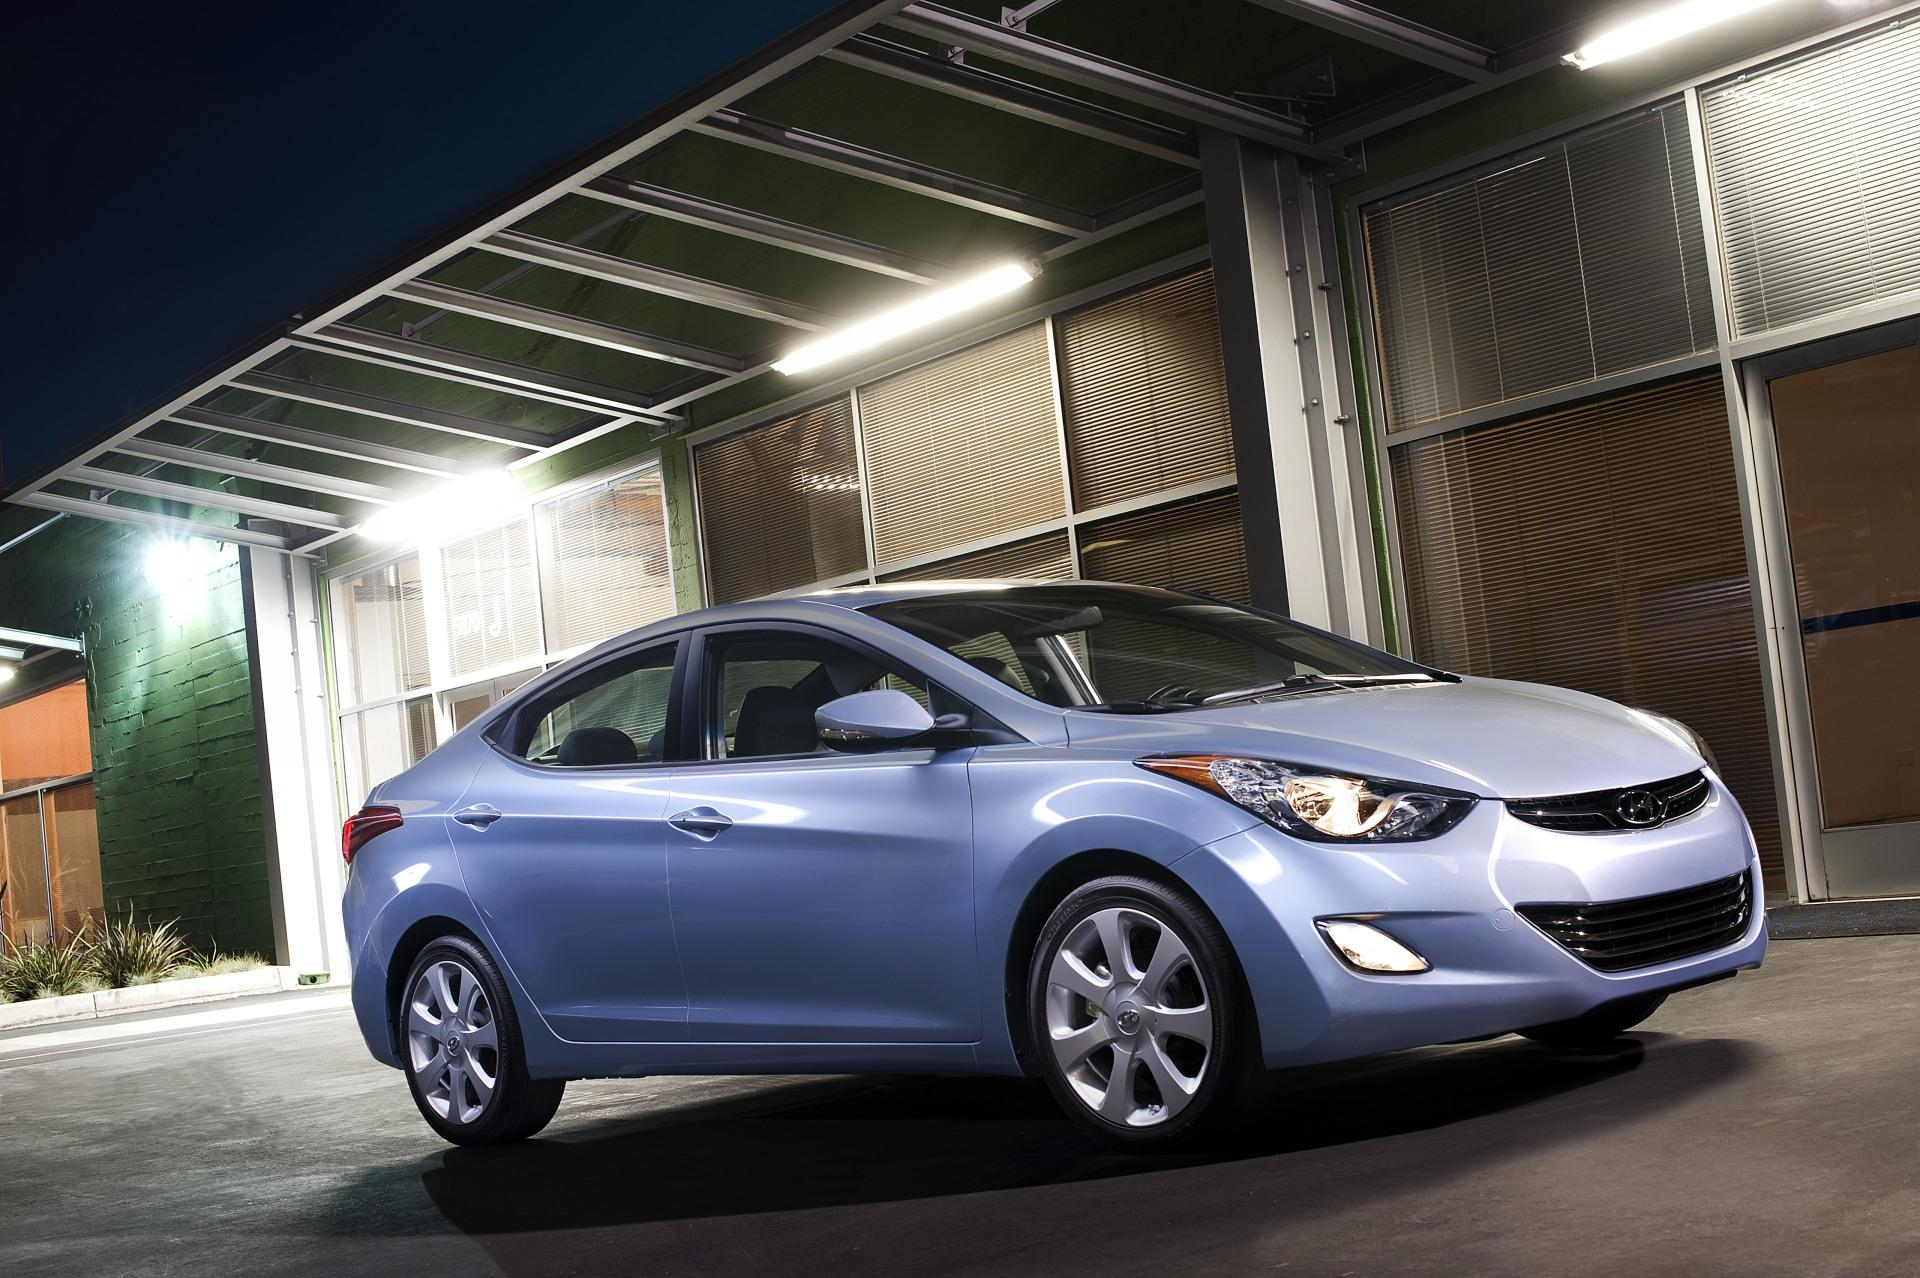 2011 hyundai elantra technical specifications and data engine dimensions and mechanical. Black Bedroom Furniture Sets. Home Design Ideas